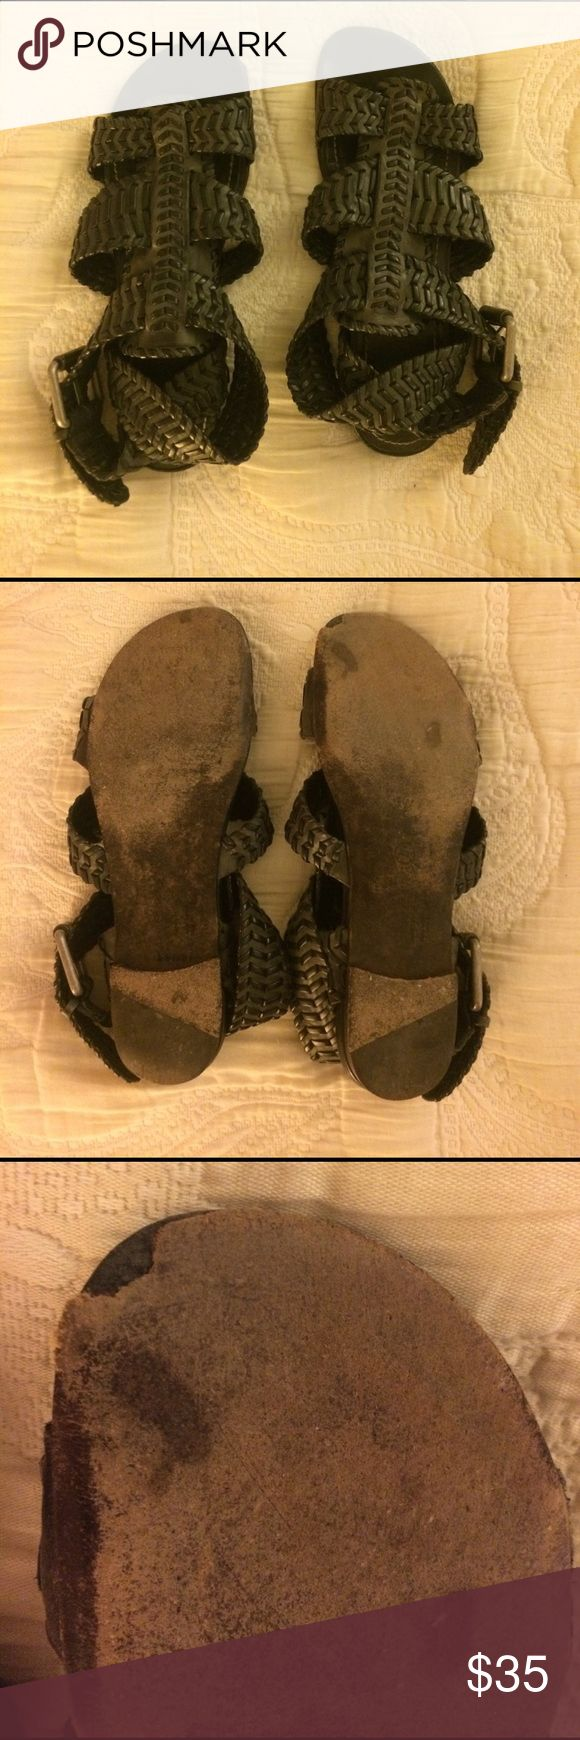 Selling this All Saints Gladiator Sandals Size 38 or 8 women's on Poshmark! My username is: amyseidner. #shopmycloset #poshmark #fashion #shopping #style #forsale #All Saints #Shoes